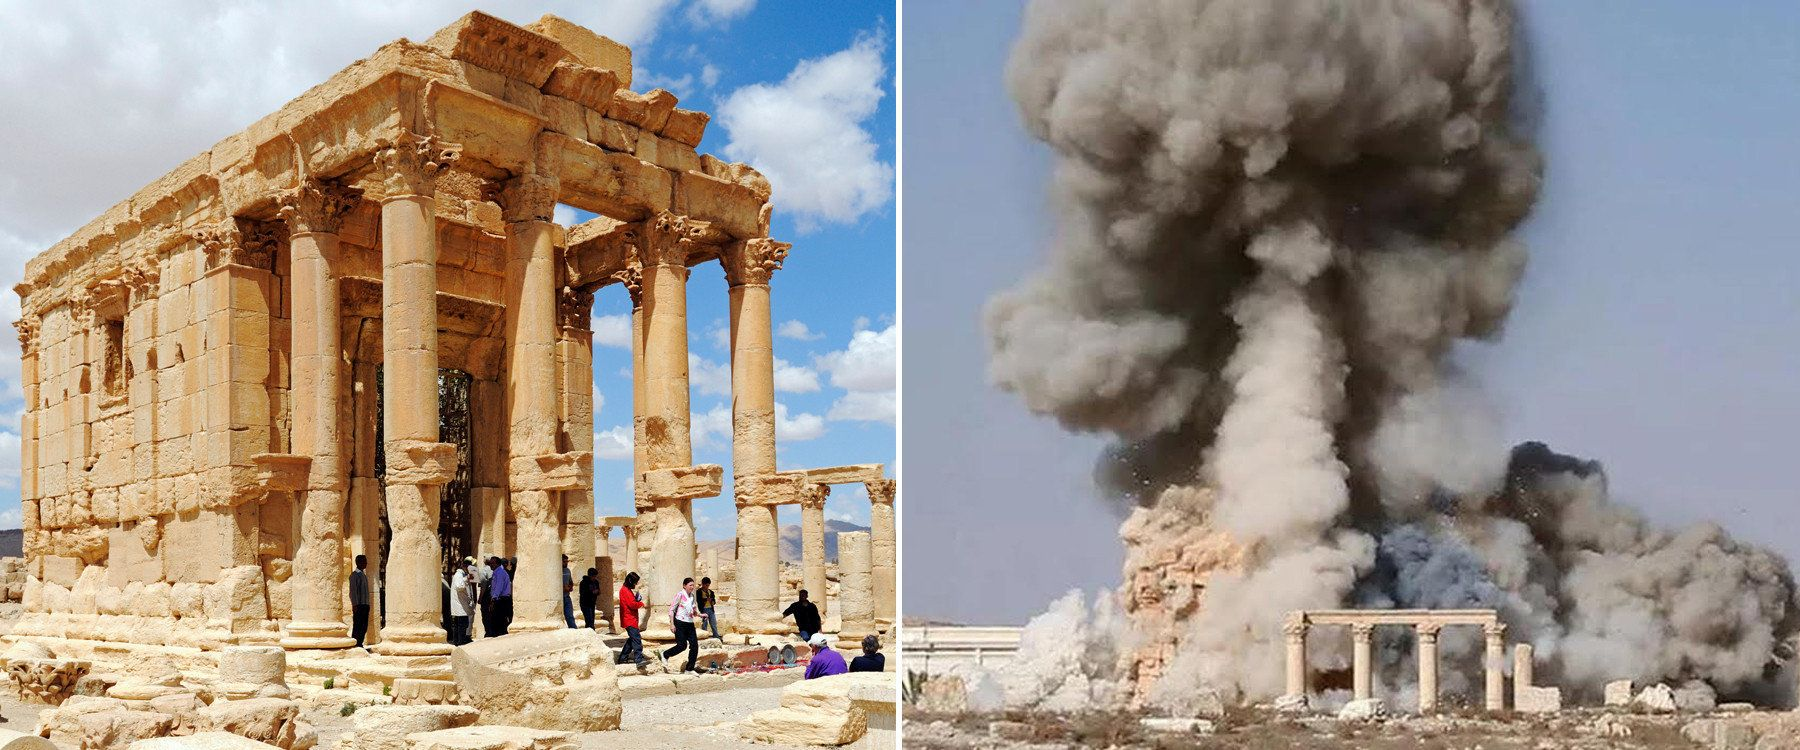 Syria Civil War Haunting Lonely Planet And Rough Guide Reviews Show